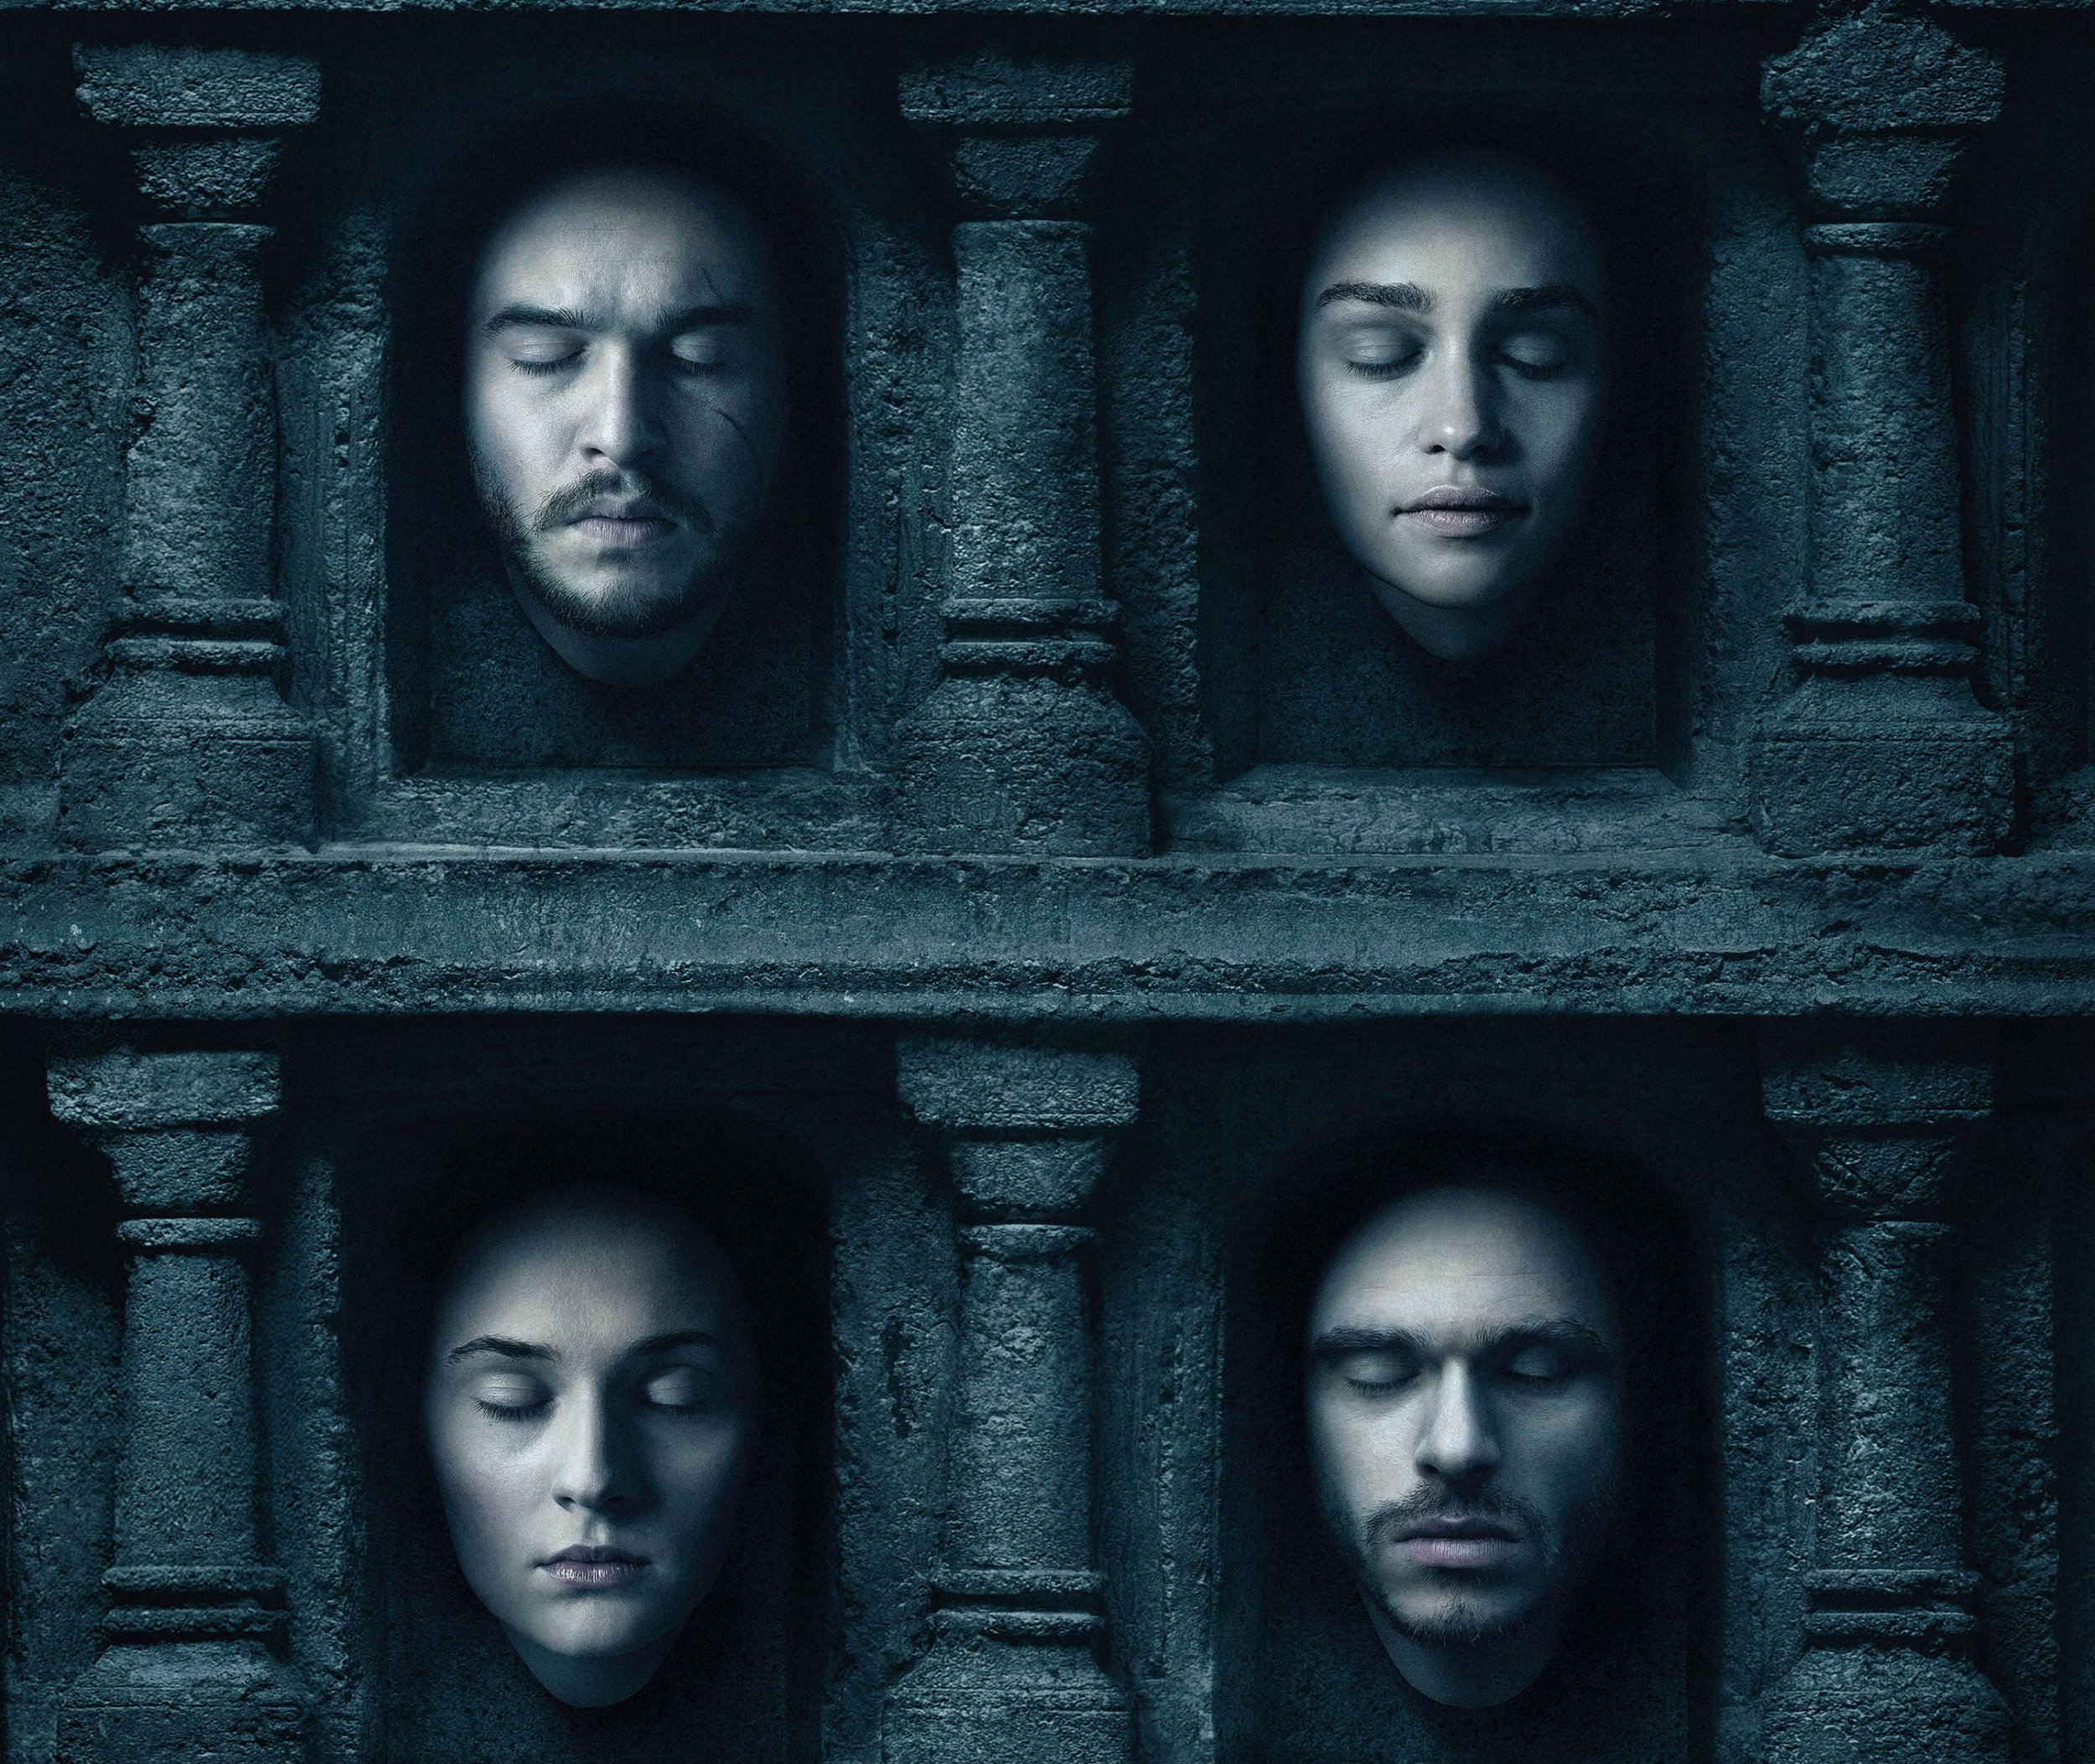 'Game of Thrones' Season 6: What We Know So Far